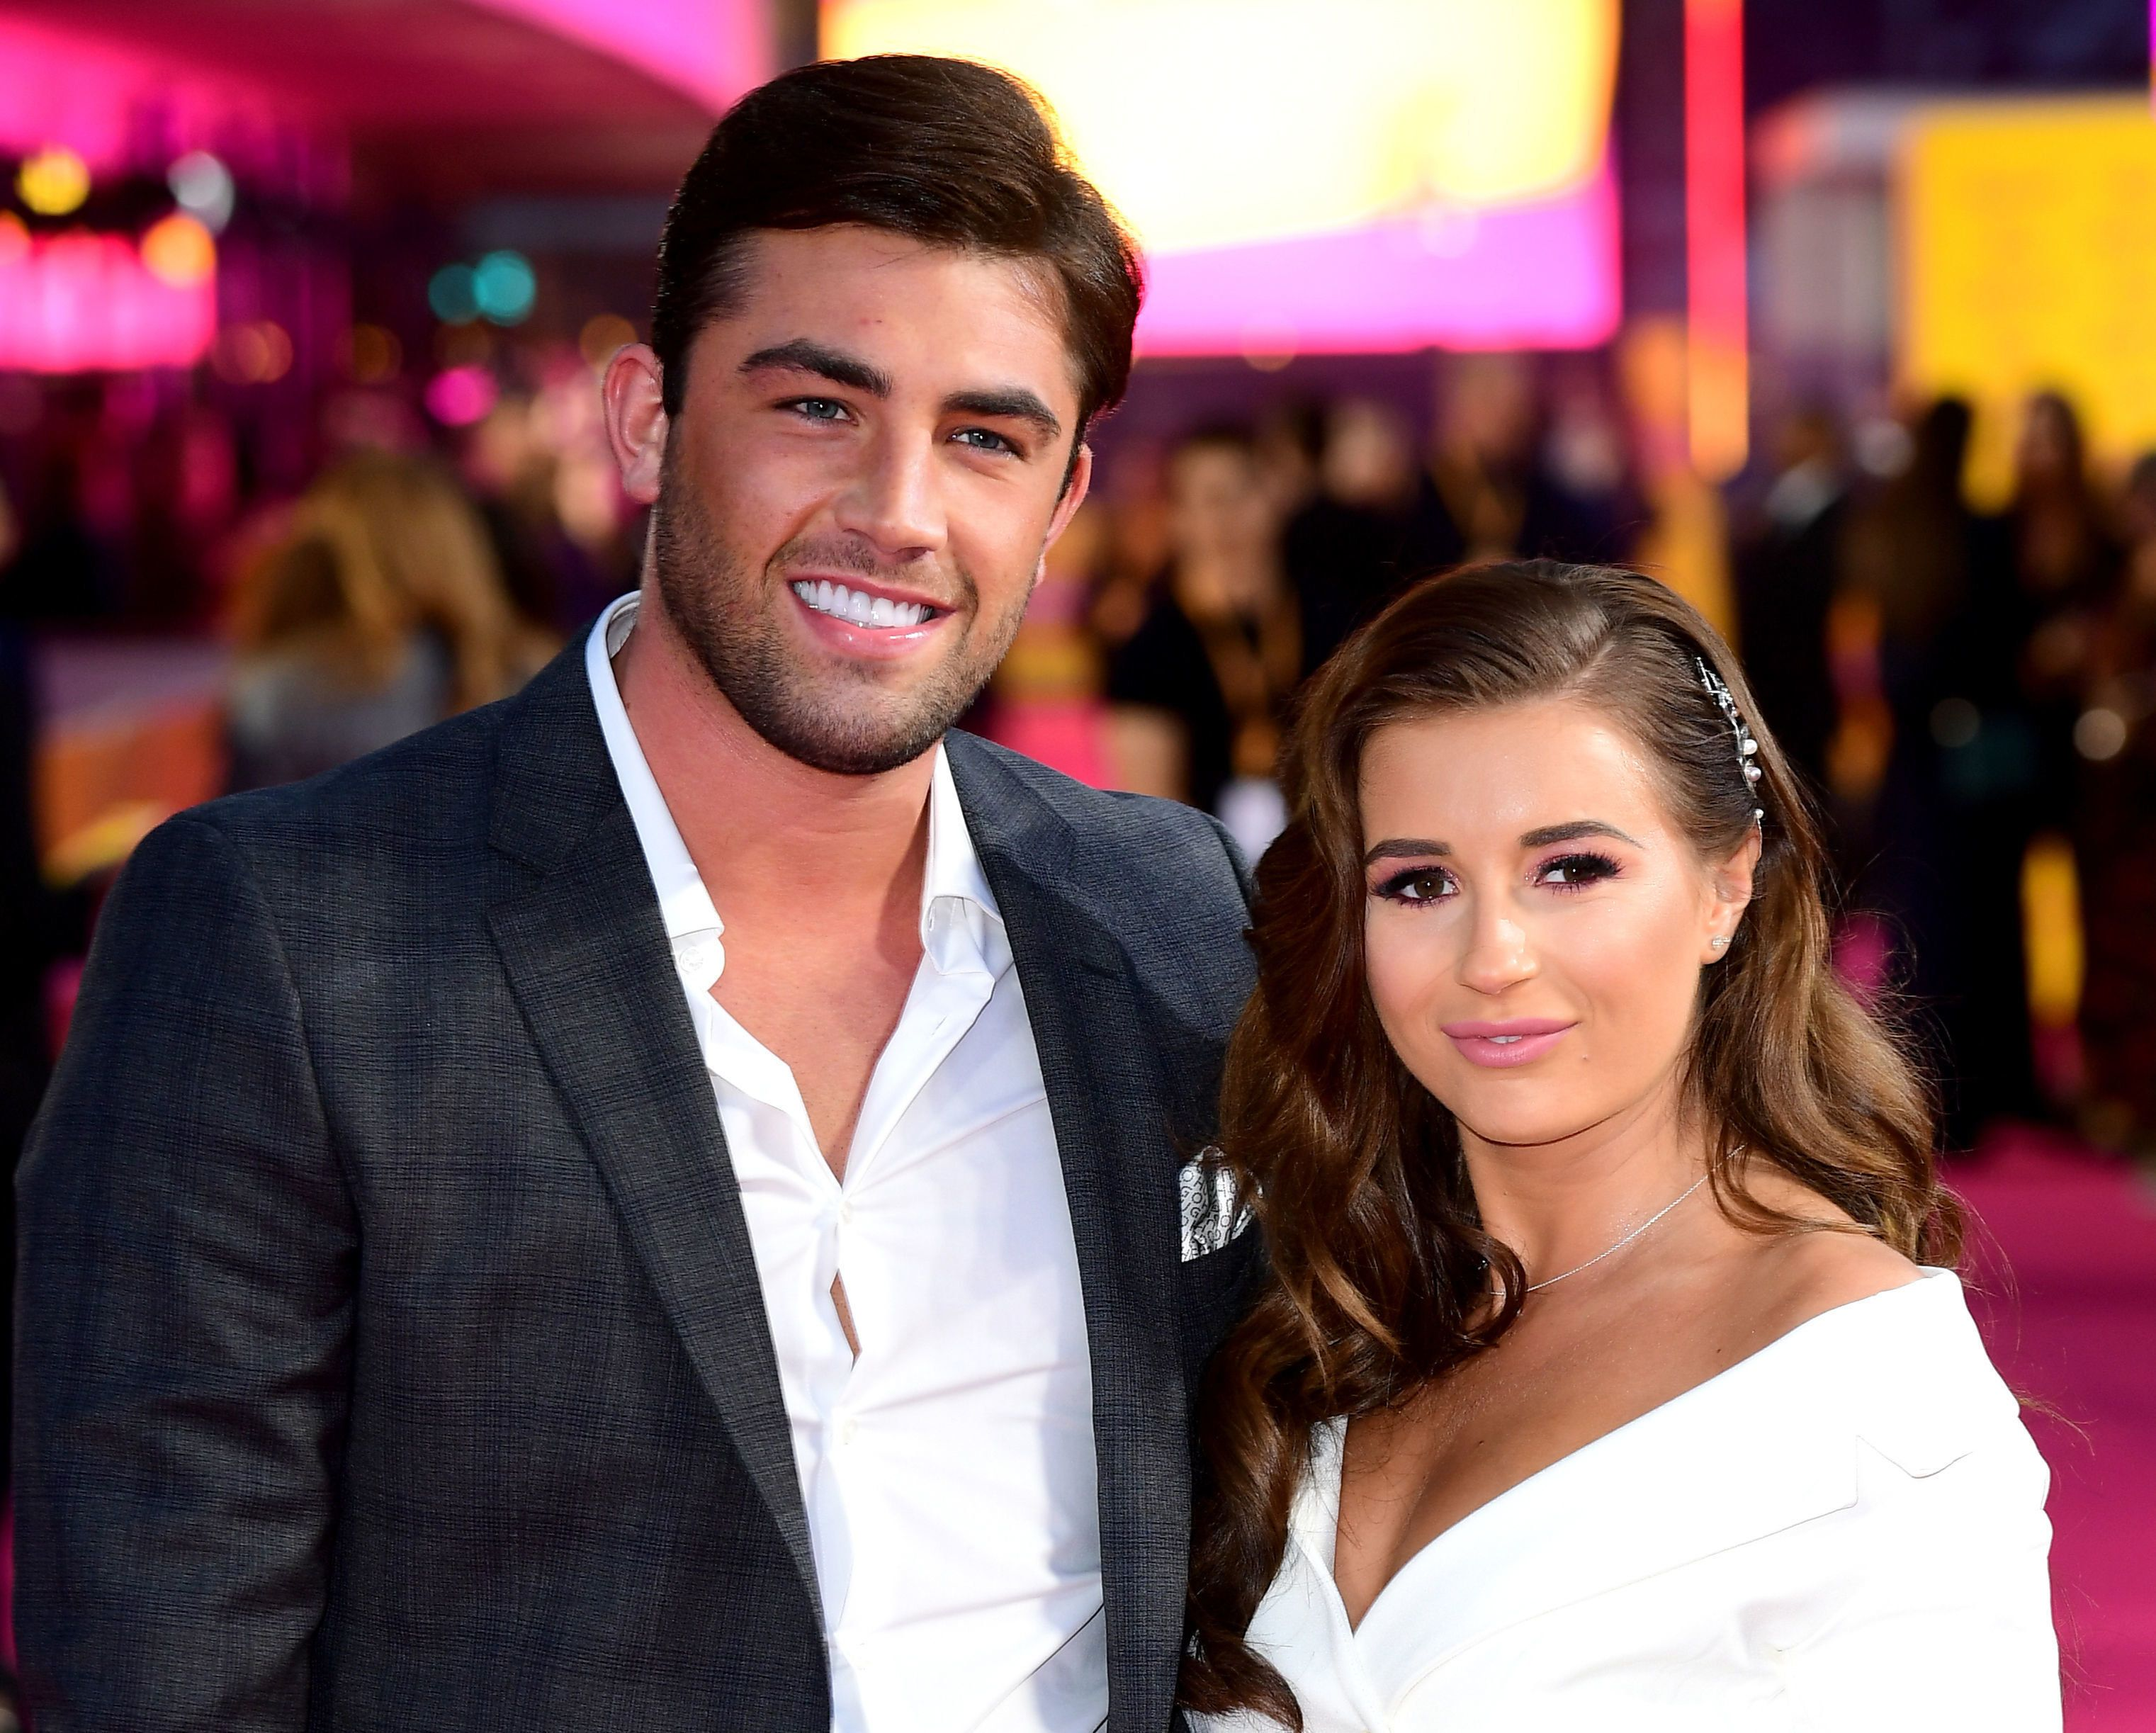 Jack Fincham and Dani Dyer from Love Island 2018 have SPLIT